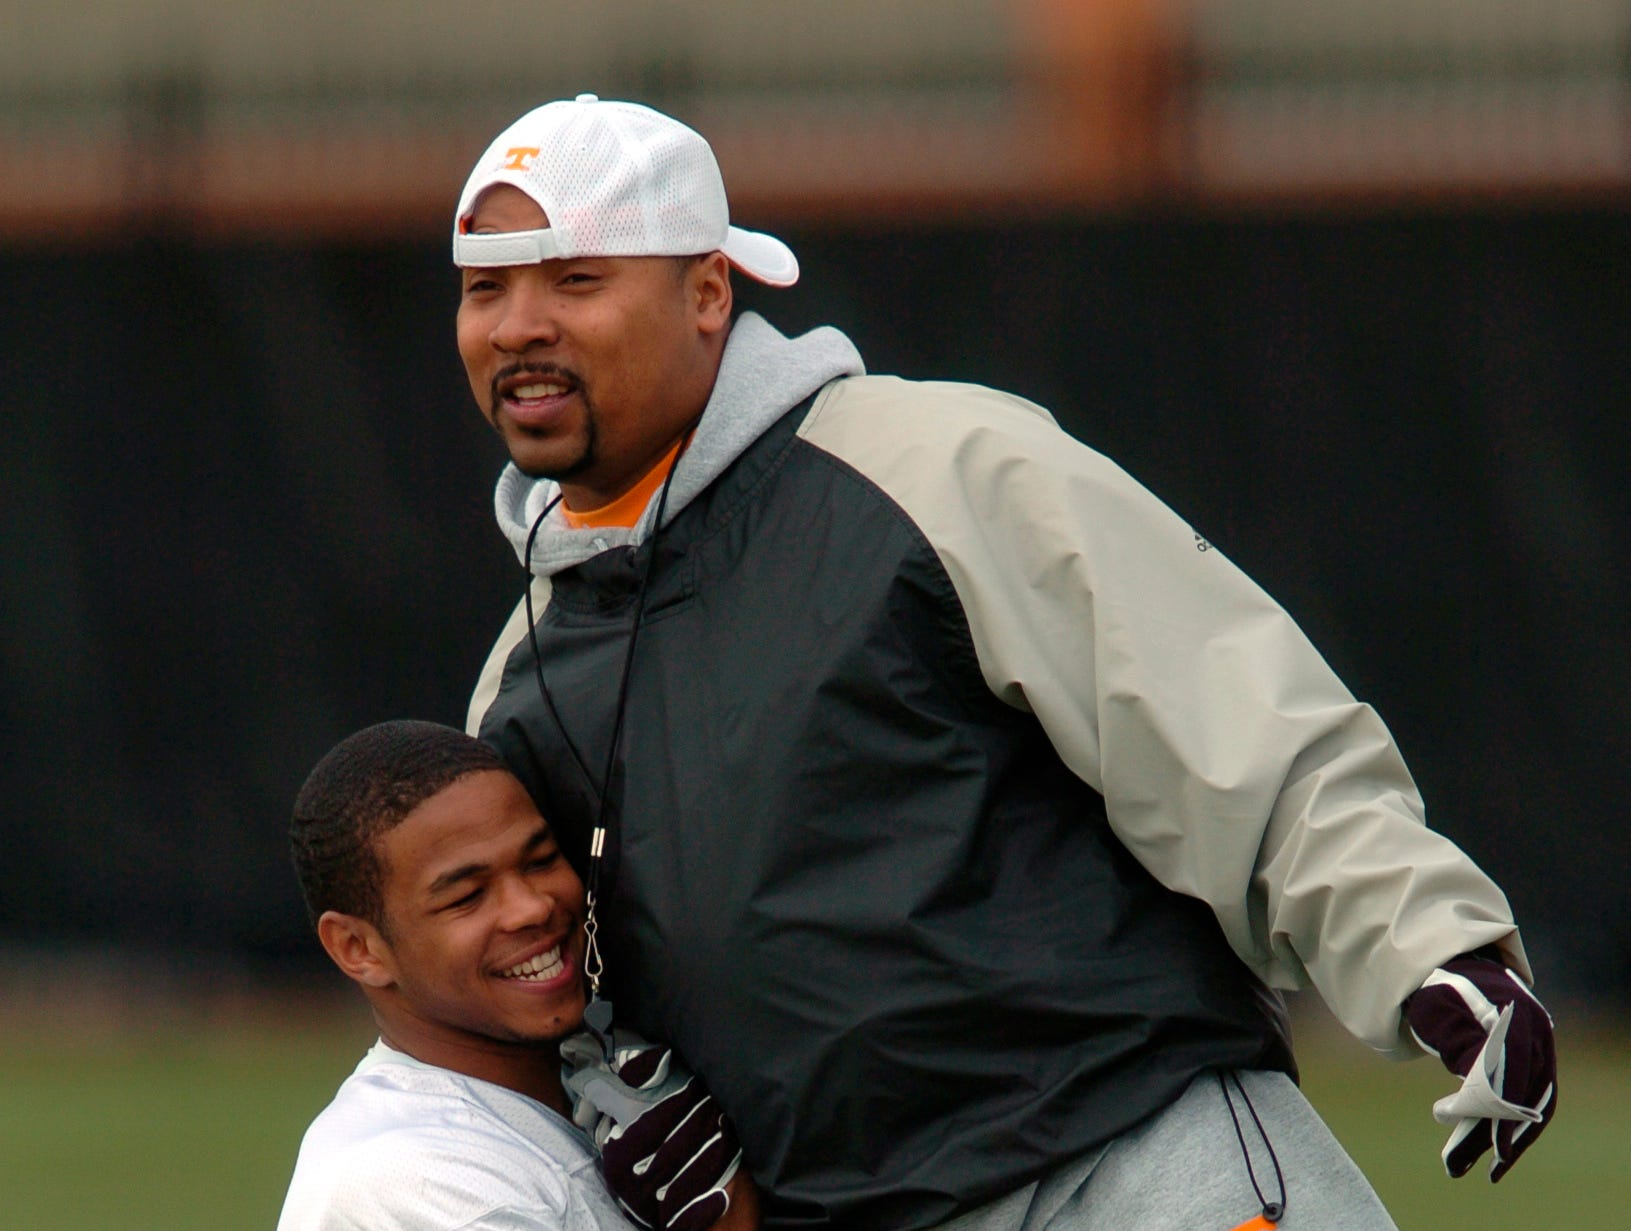 0310UTF.JA#3207.jpg --Sports --  Tennessee running backs coach Trooper Taylor jokes around with Inquoris Johnson during the Vols first spring practice Thursday afternoon on Haslam Field.Jeff Adkins/NEWS SENTINEL ----03/10/2005